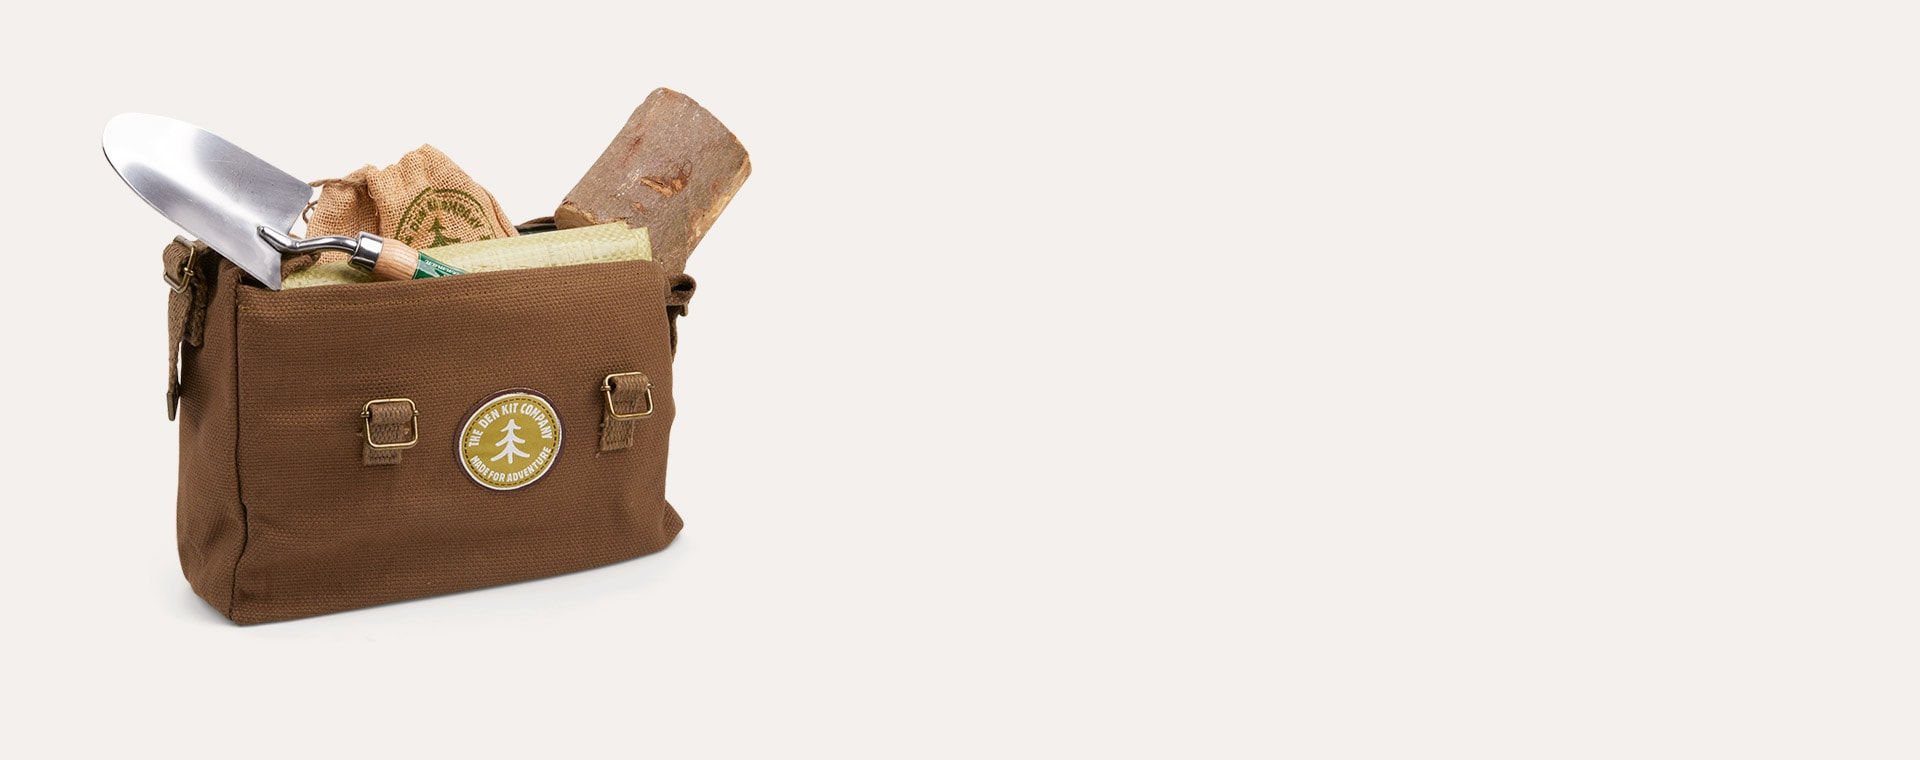 Multi The Den Kit The British Woodland Den Kit